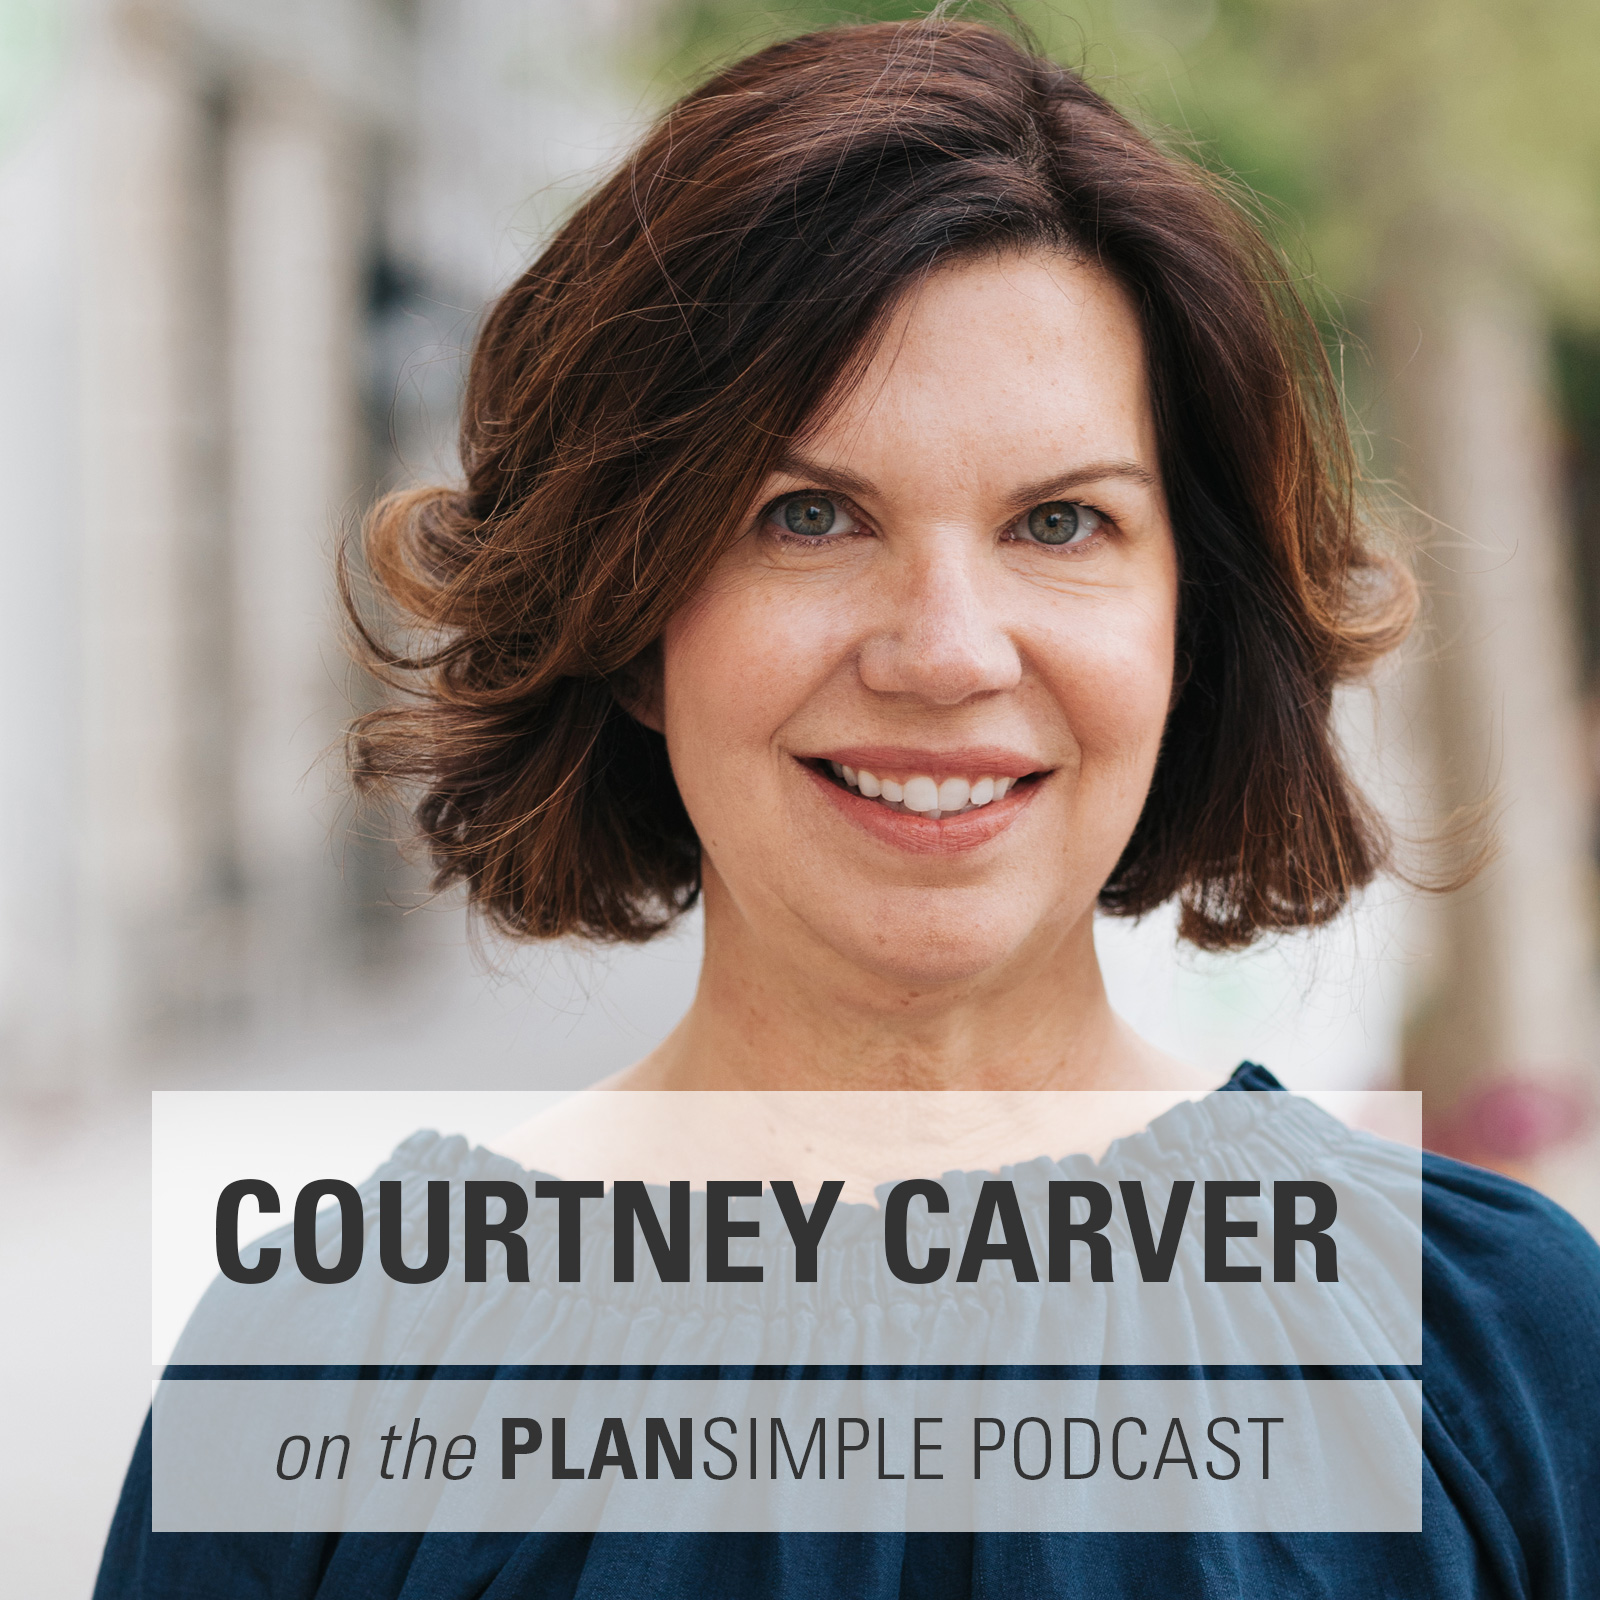 33 Things With Courtney Carver